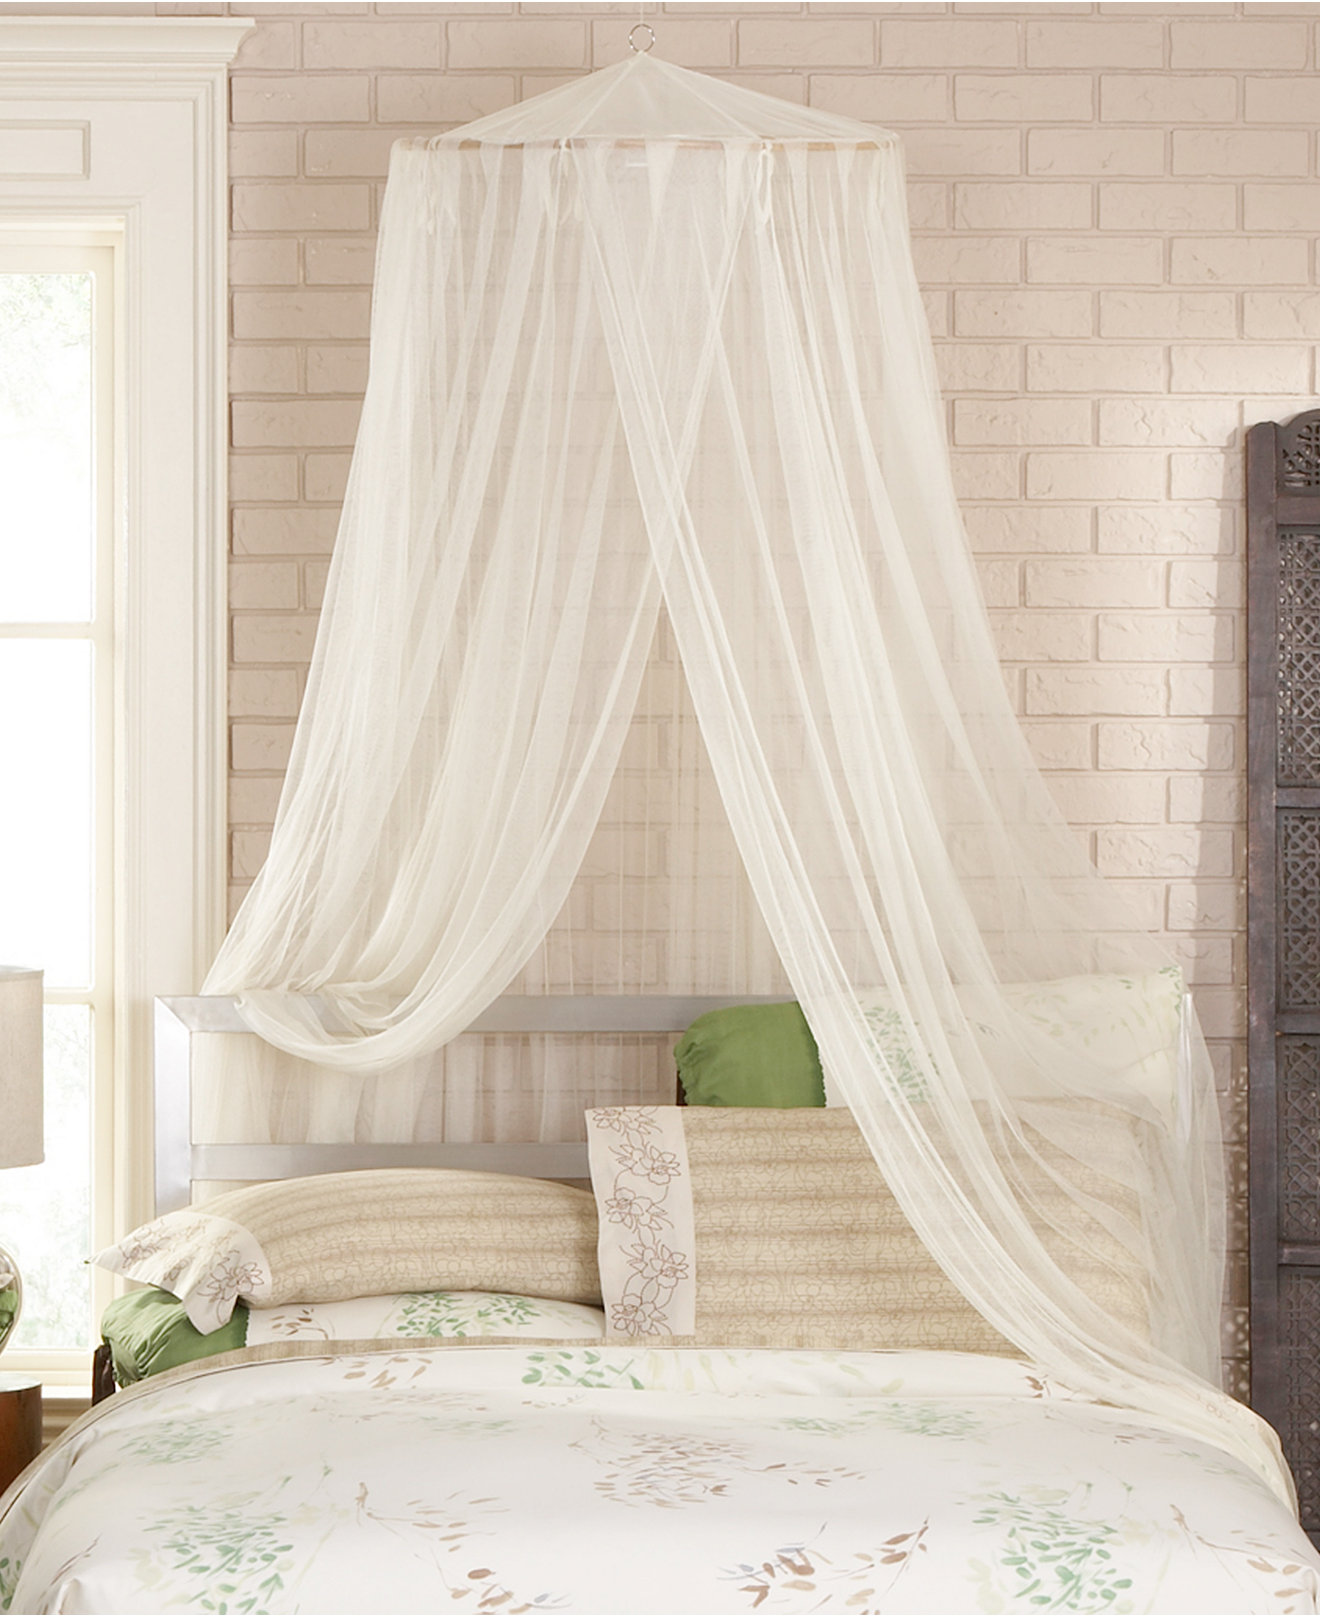 Canopy Bedroom Curtains: Rena's Main Project Inspirations: Light-Up Bed Canopy